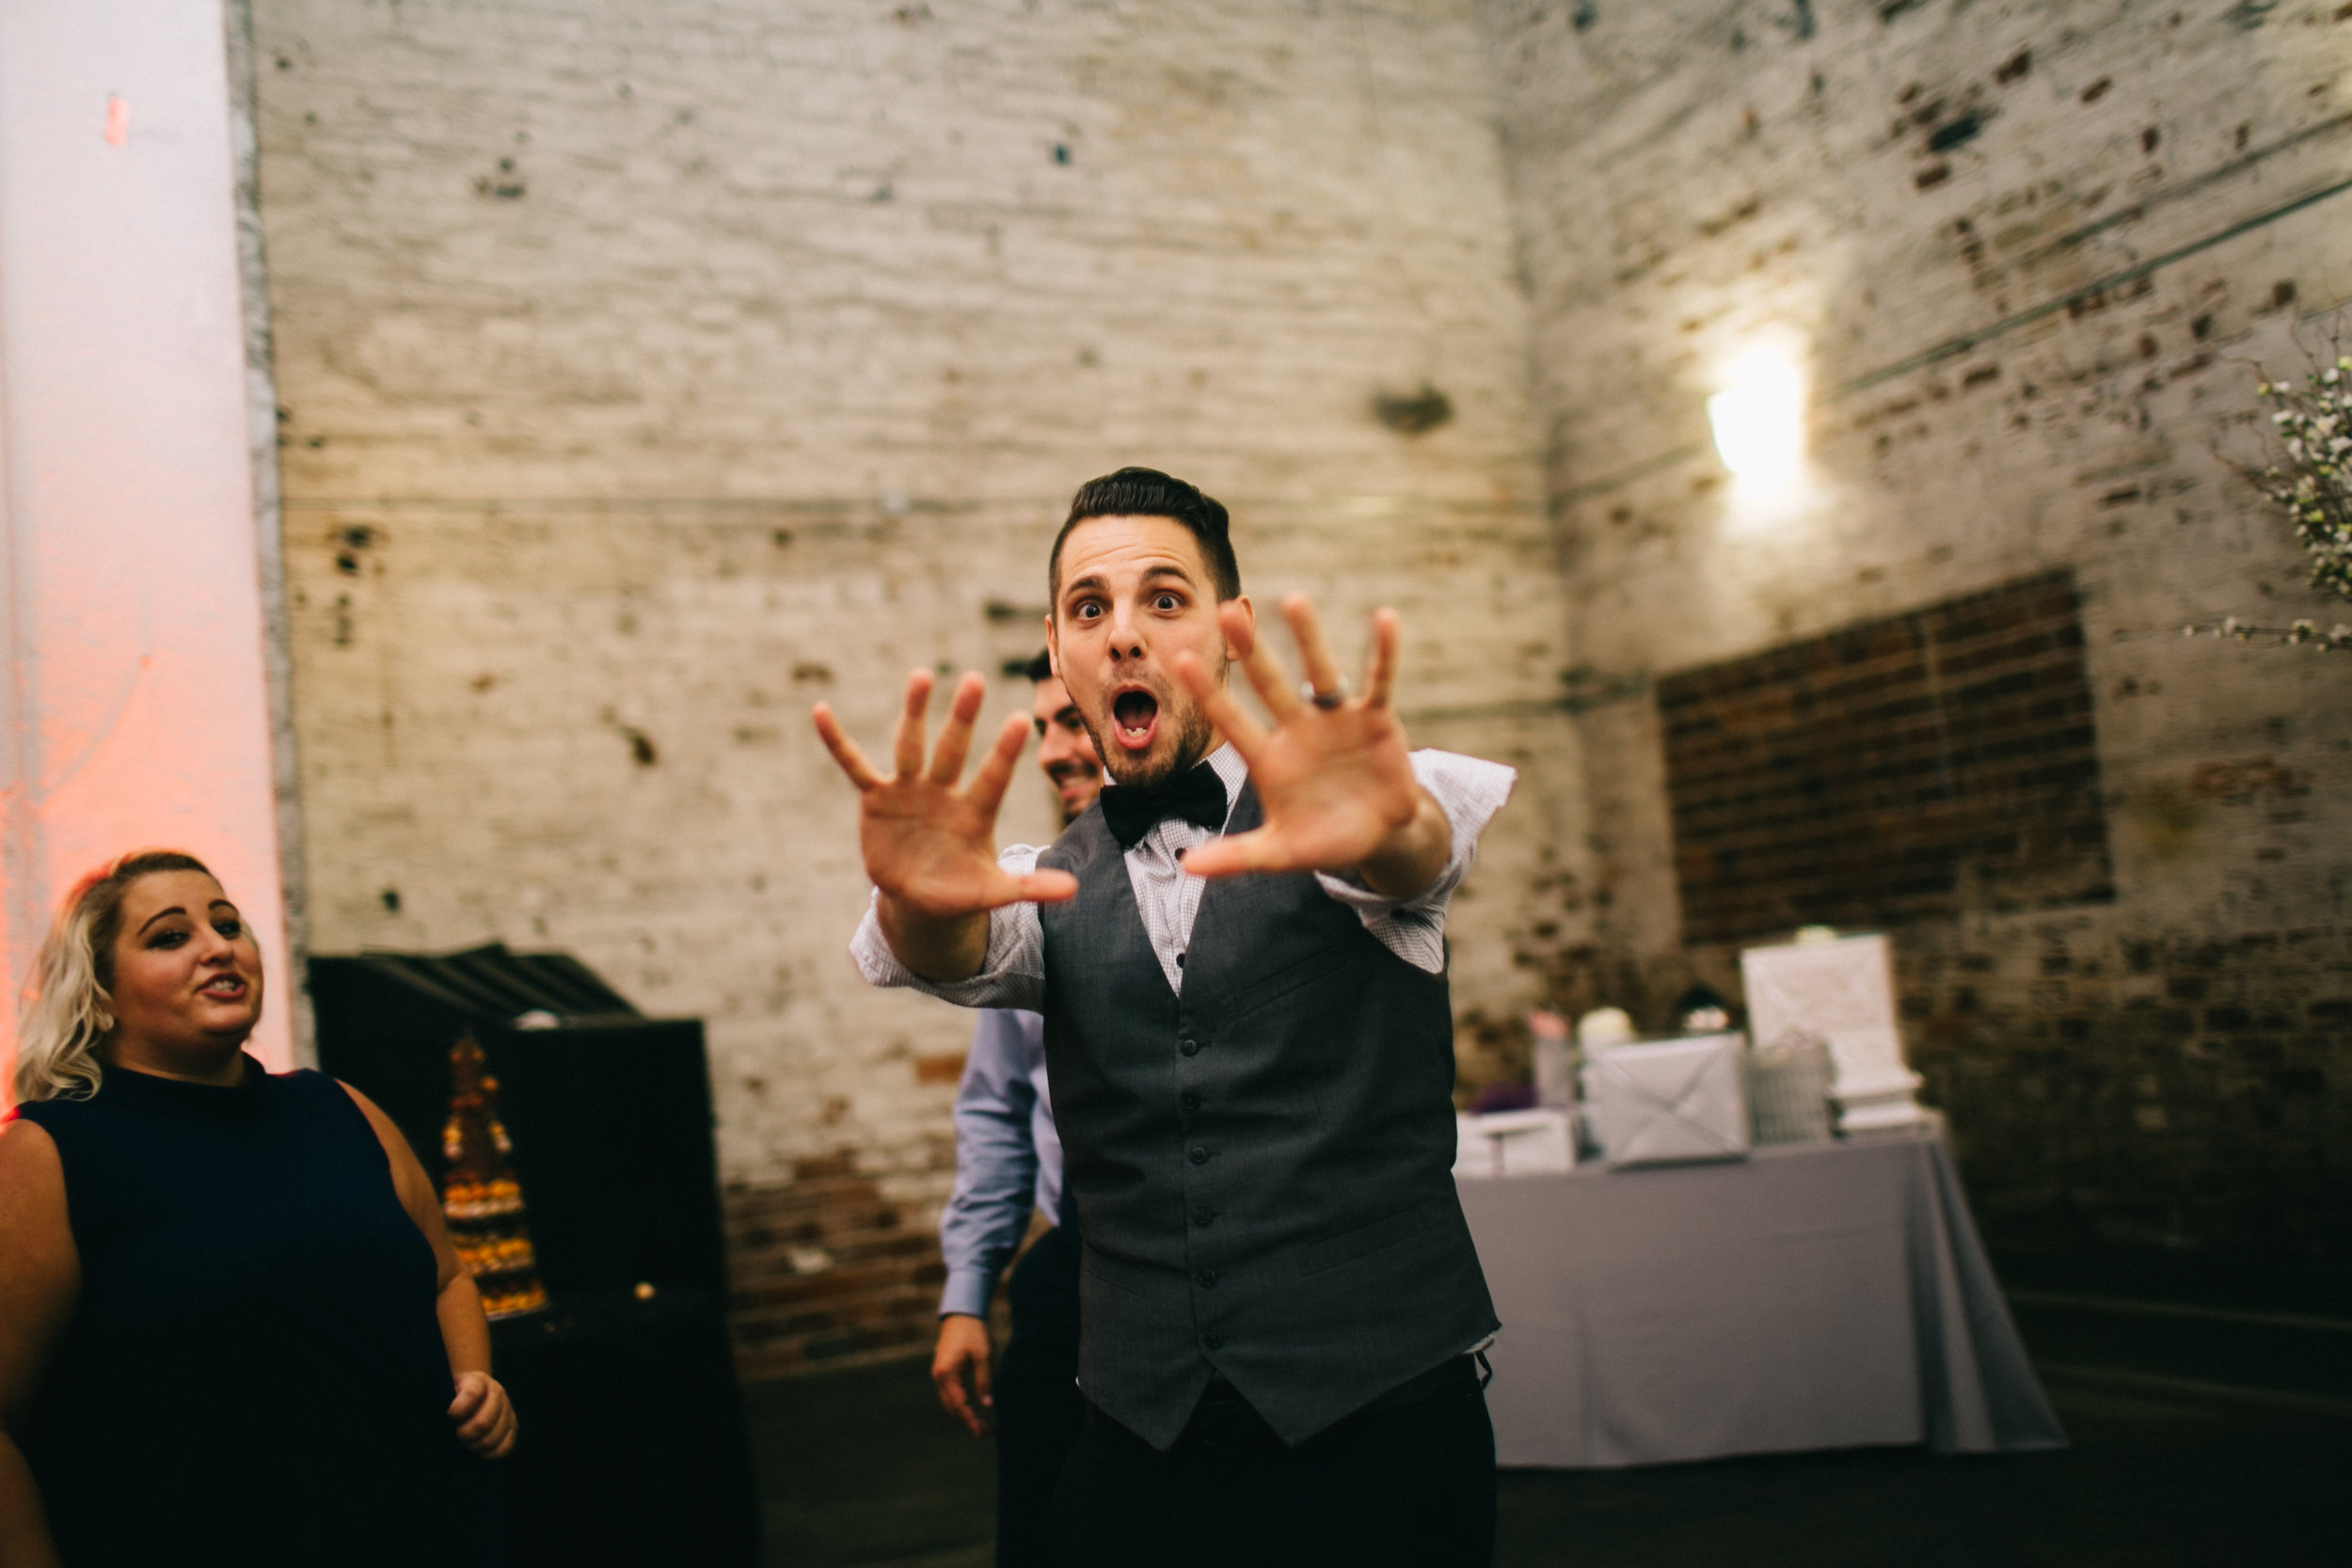 Tampa Industrial wedding at the Rialto Theater_216.jpg